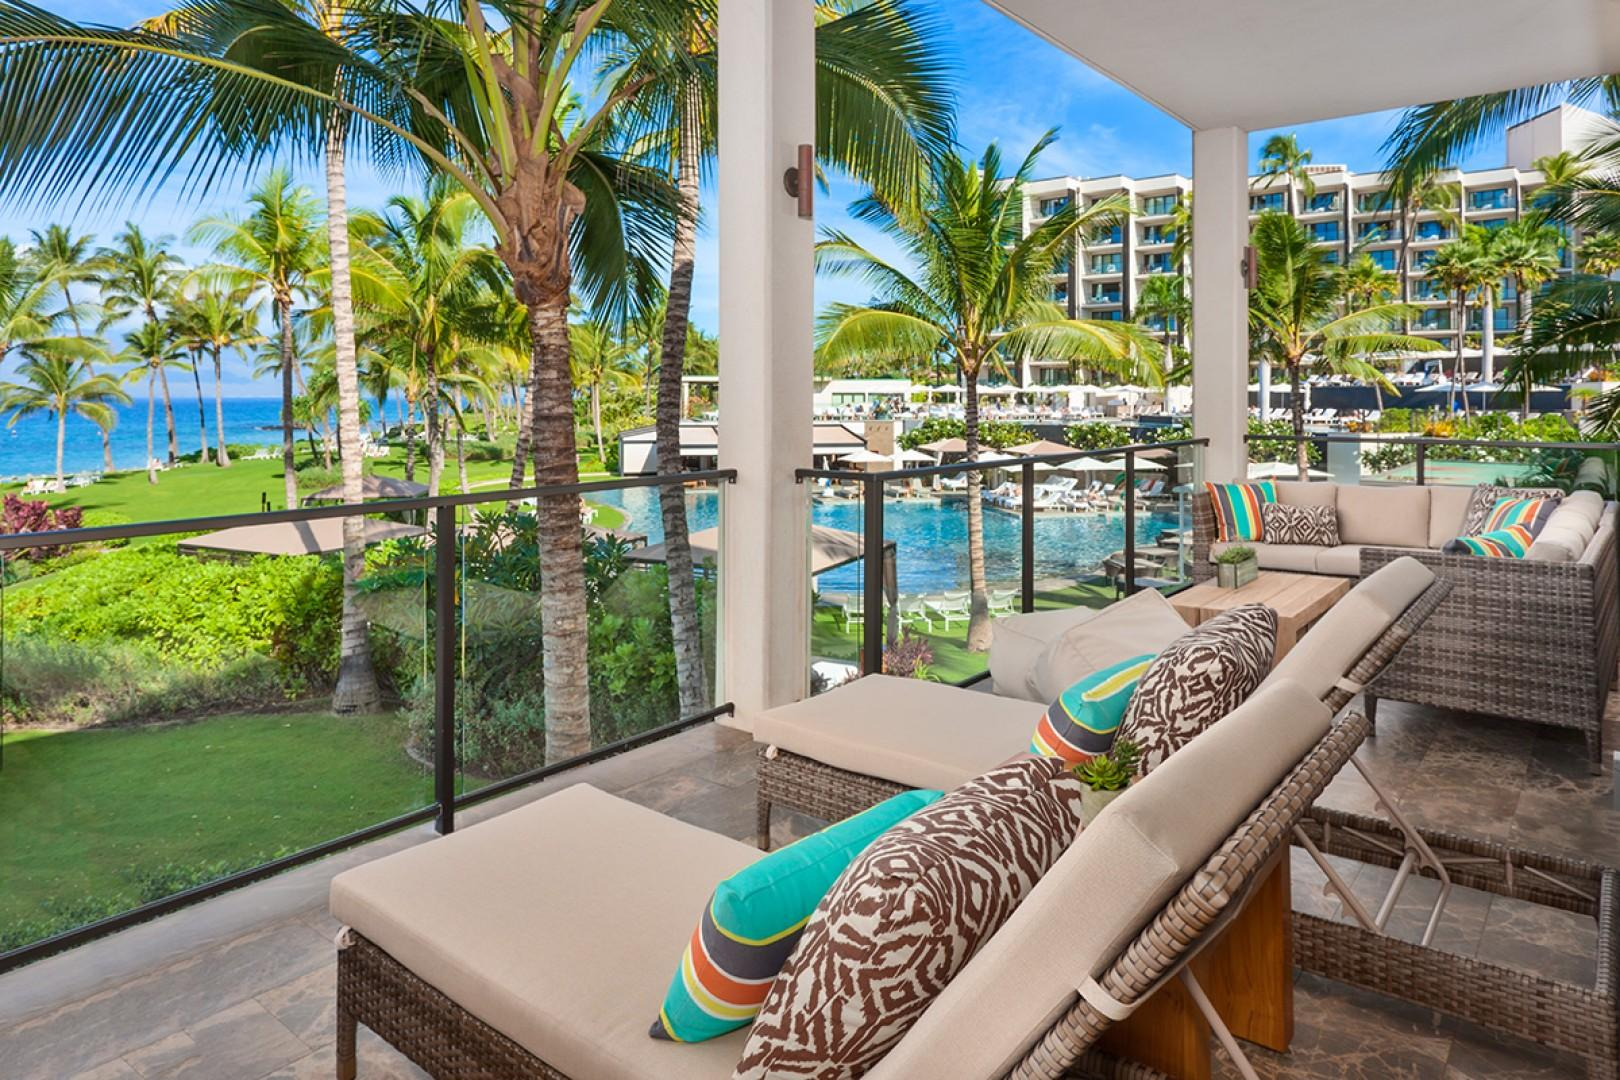 Your Own Private Paradise - A Covered Outdoor Patio with Ocean and Resort Pool Views, Comfortable Sectional Lounge Seating, Hot Tub, Dining For 8, BBQ and 2 Reclining Chaise Lounge Chairs